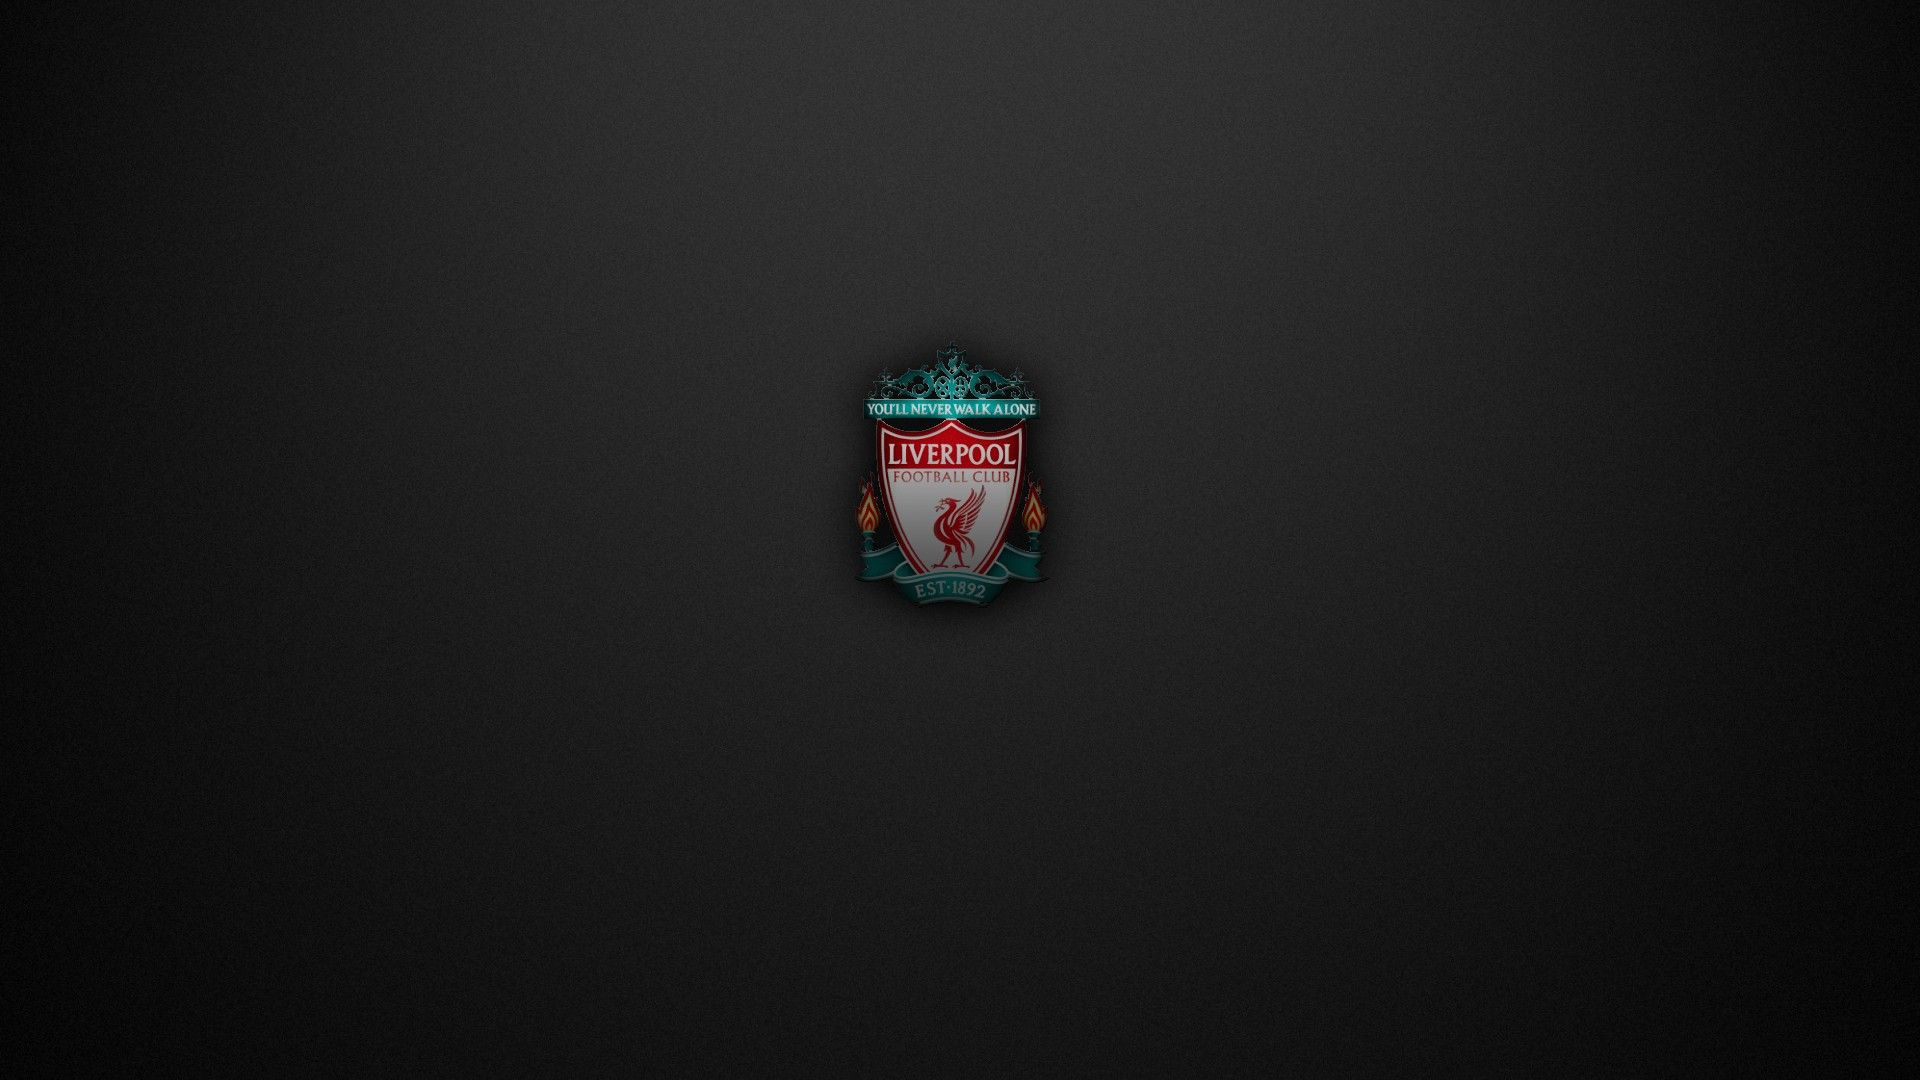 Liverpool logo tablet wallpapers and backgrounds tablet wallpapers liverpool logo tablet wallpapers and backgrounds tablet wallpapers voltagebd Choice Image